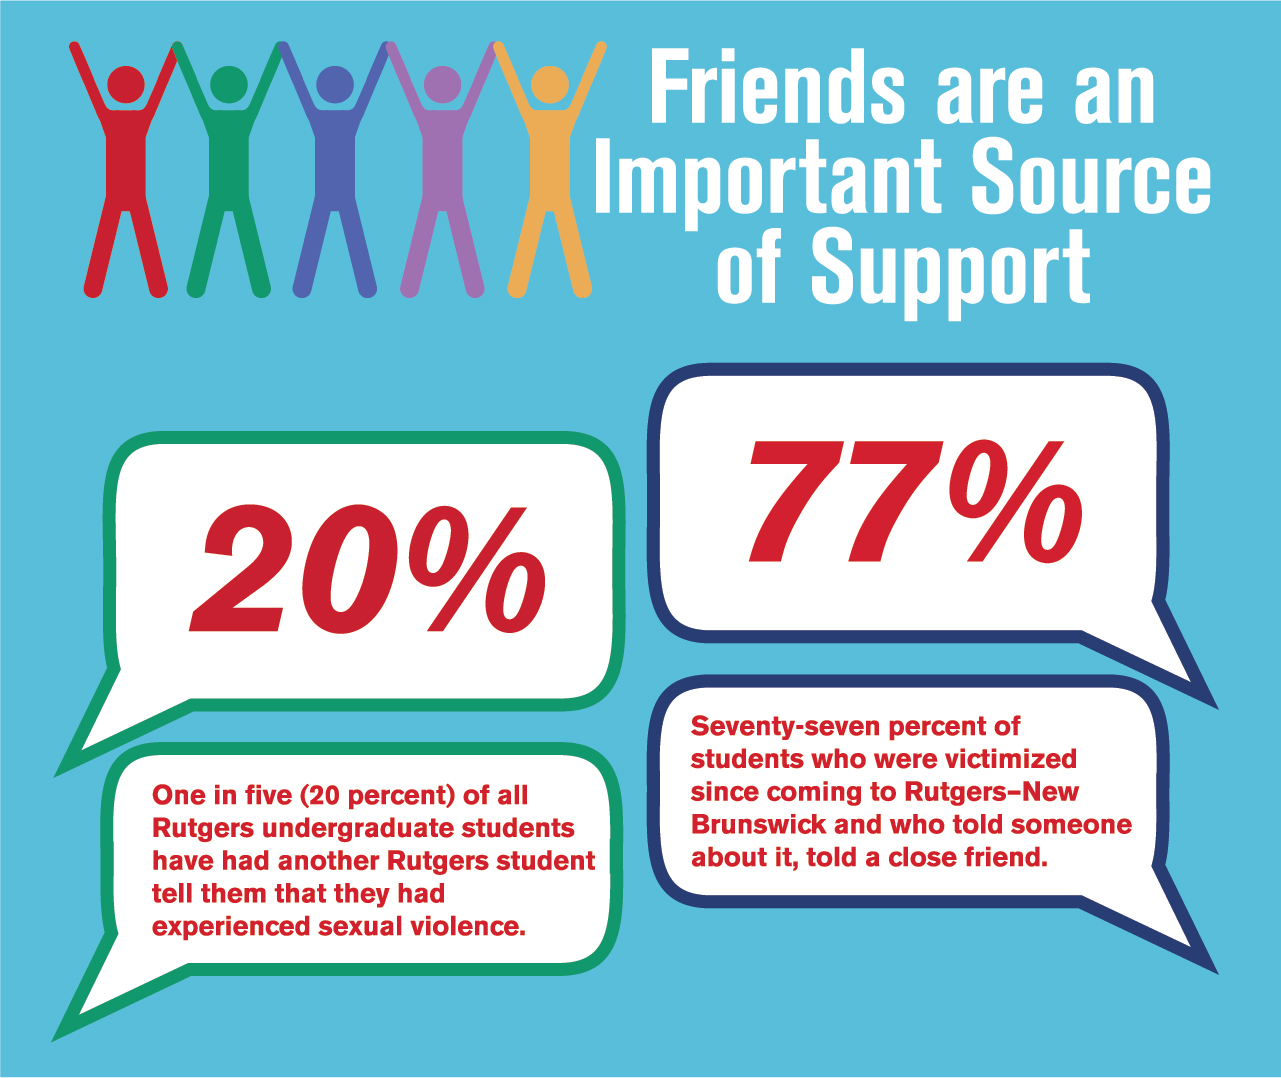 Friends are an Important Source of Support. One in five (20 percent) of all Rutgers undergraduate students have had another Rutgers student tell them that they had experienced sexual violence. 77% of students who were victimized since coming to Rutgers-New Brunswick and who told someone about it, told a close friend.